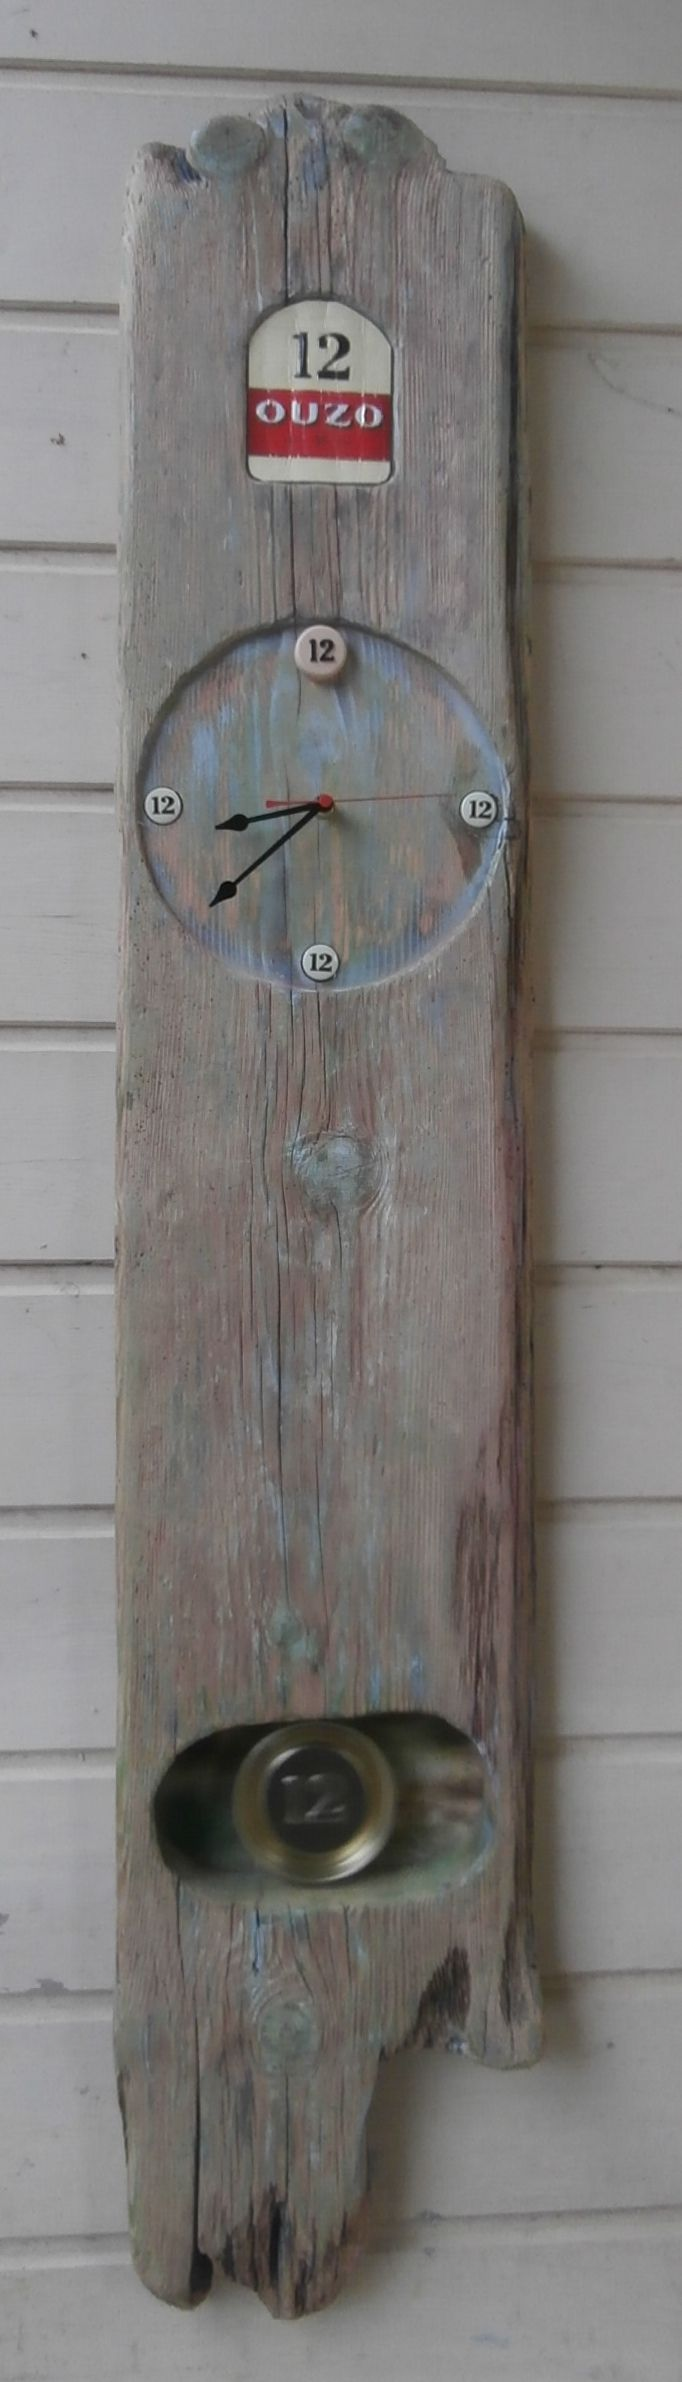 63 best driftwood upcycled clocks images on pinterest a sturdy wall hanging ouzo 12 themed clock a wonderful piece of driftwood amipublicfo Image collections